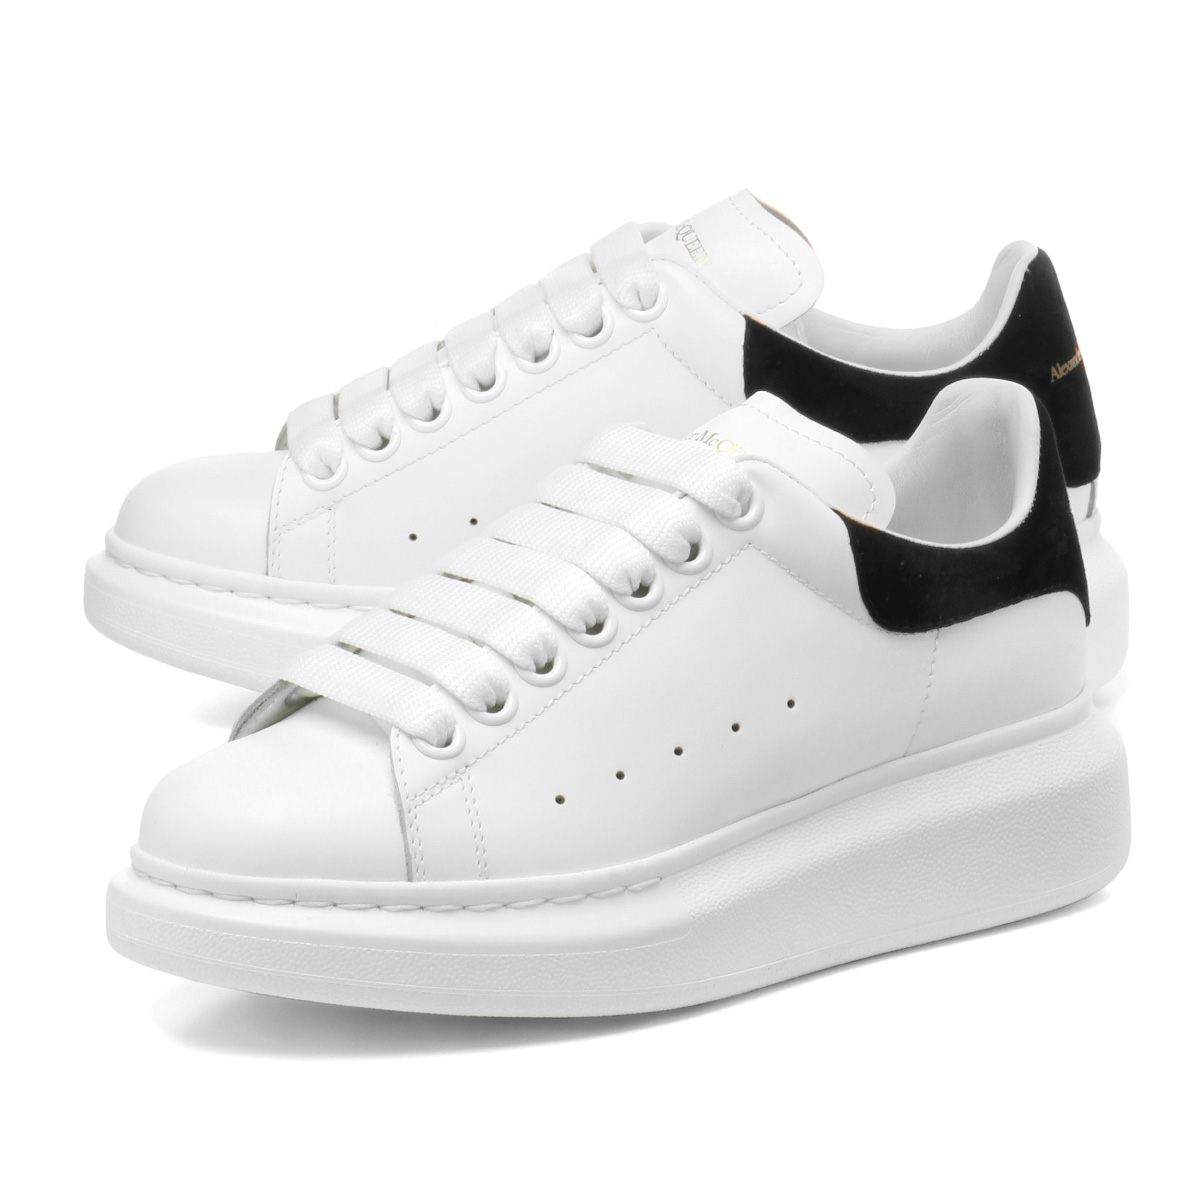 stabil kvalitet officiell san francisco importshopdouble: Alexander McQueen ALEXANDER McQUEEN shoes Lady's ...